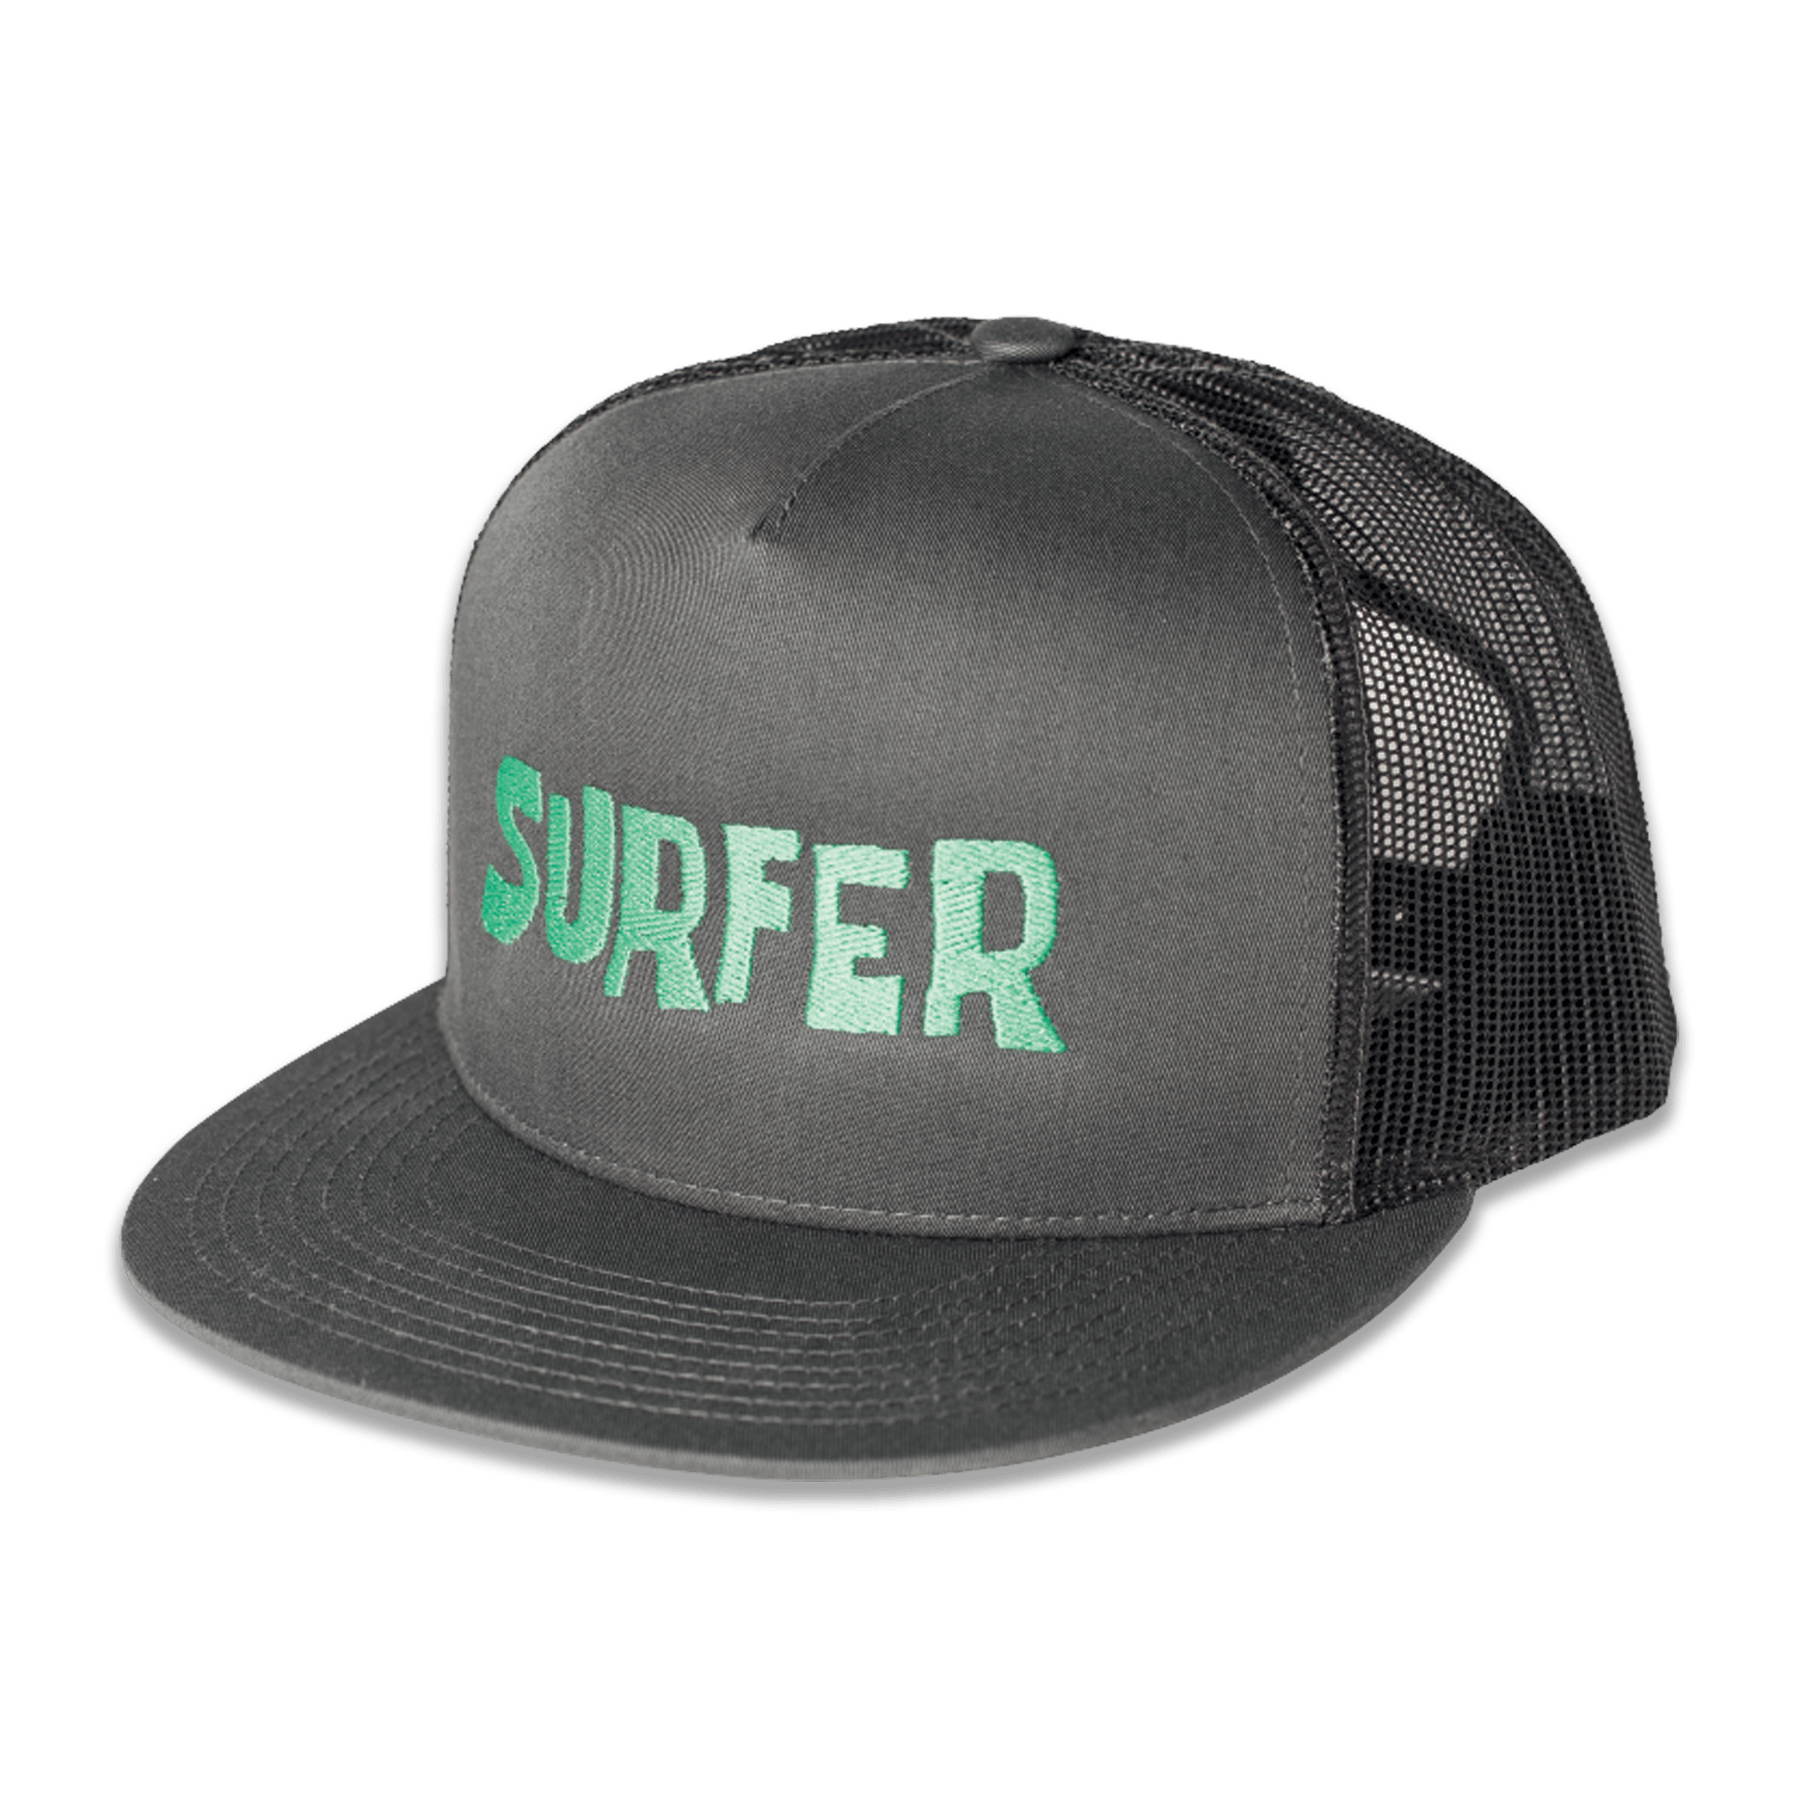 Surfer hat